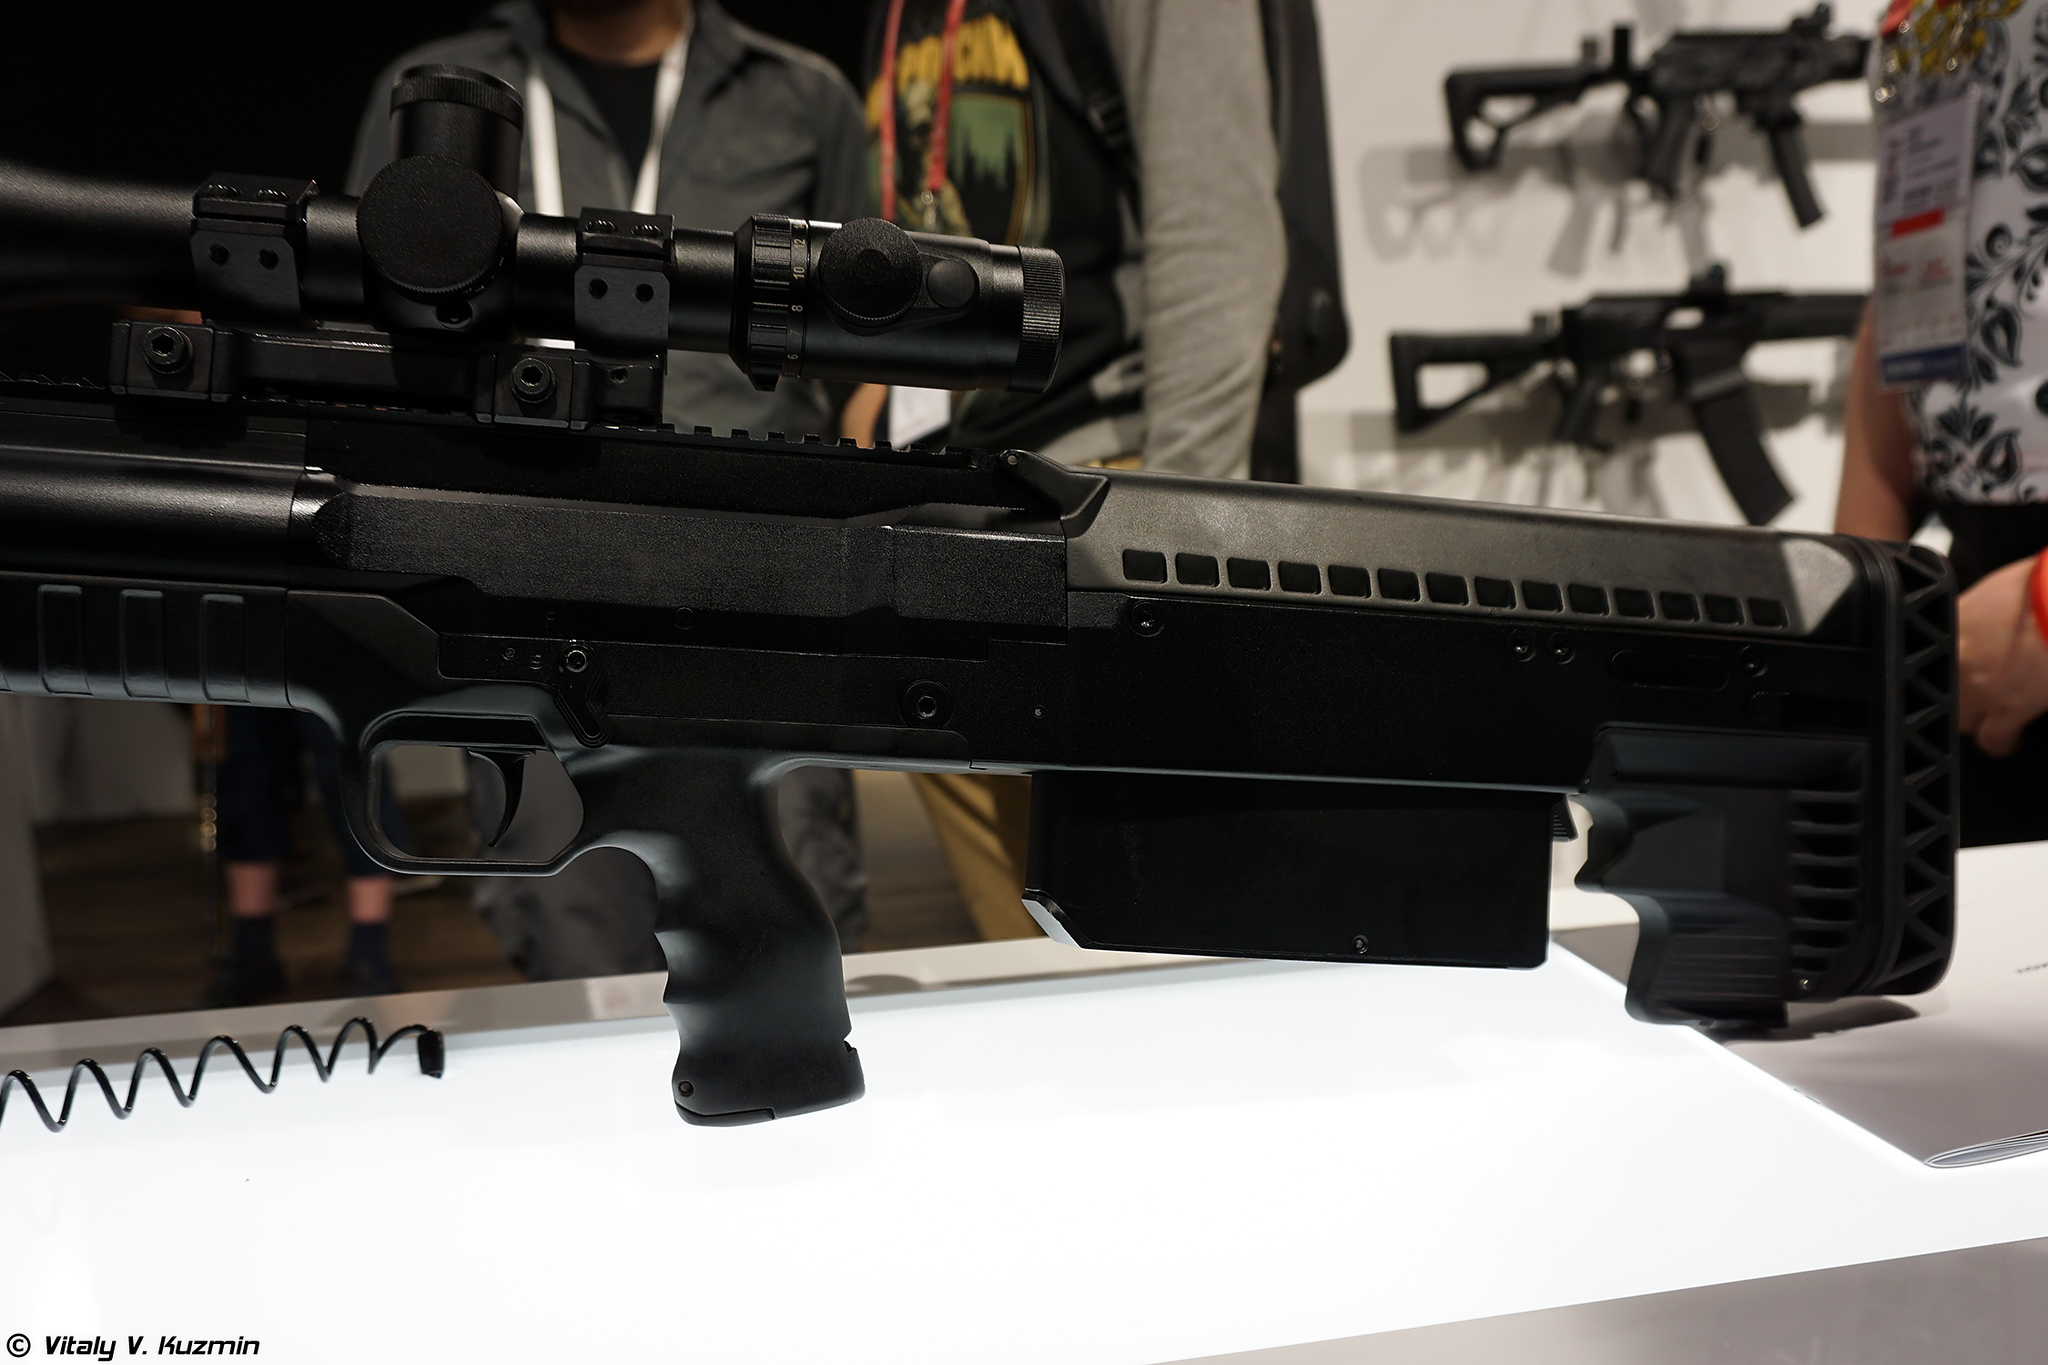 Russian Assault Rifles & Machine Guns Thread: #2 - Page 9 Army2019Pavilions-031-X4